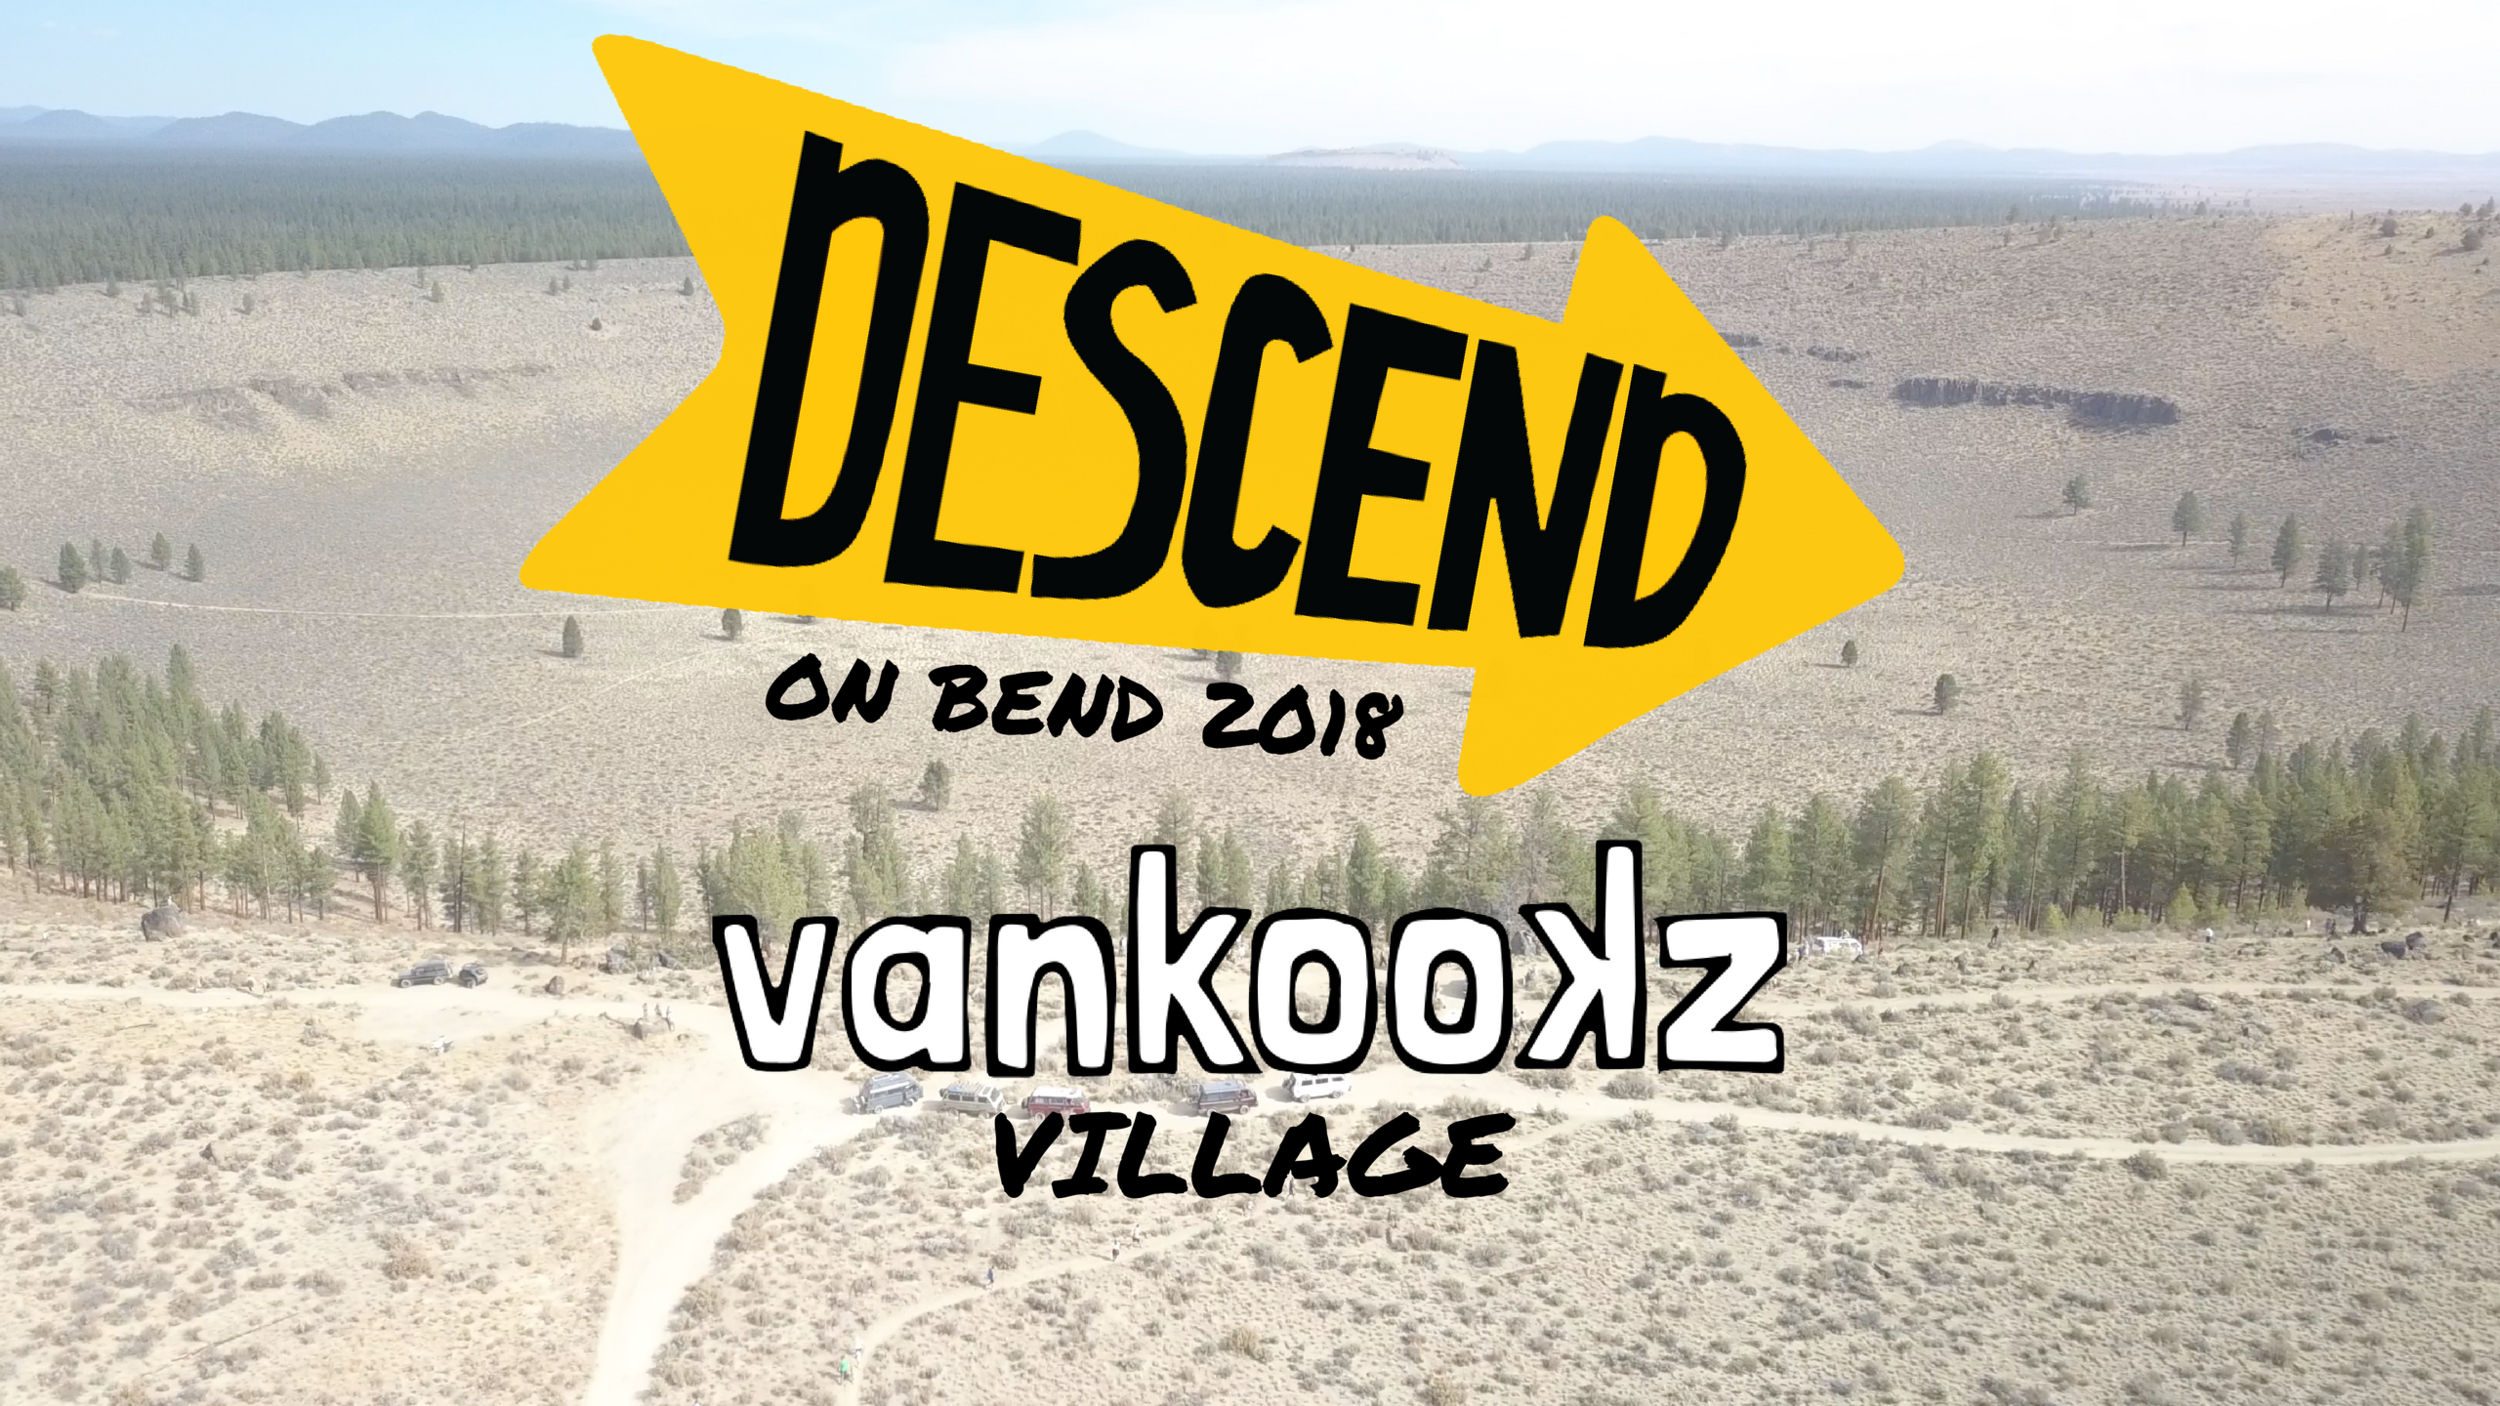 Descend on Bend 2018 - Is this the best Van Gathering, yet? Good vibes, good music, great people, multiple days, what more could you ask for? Read on…